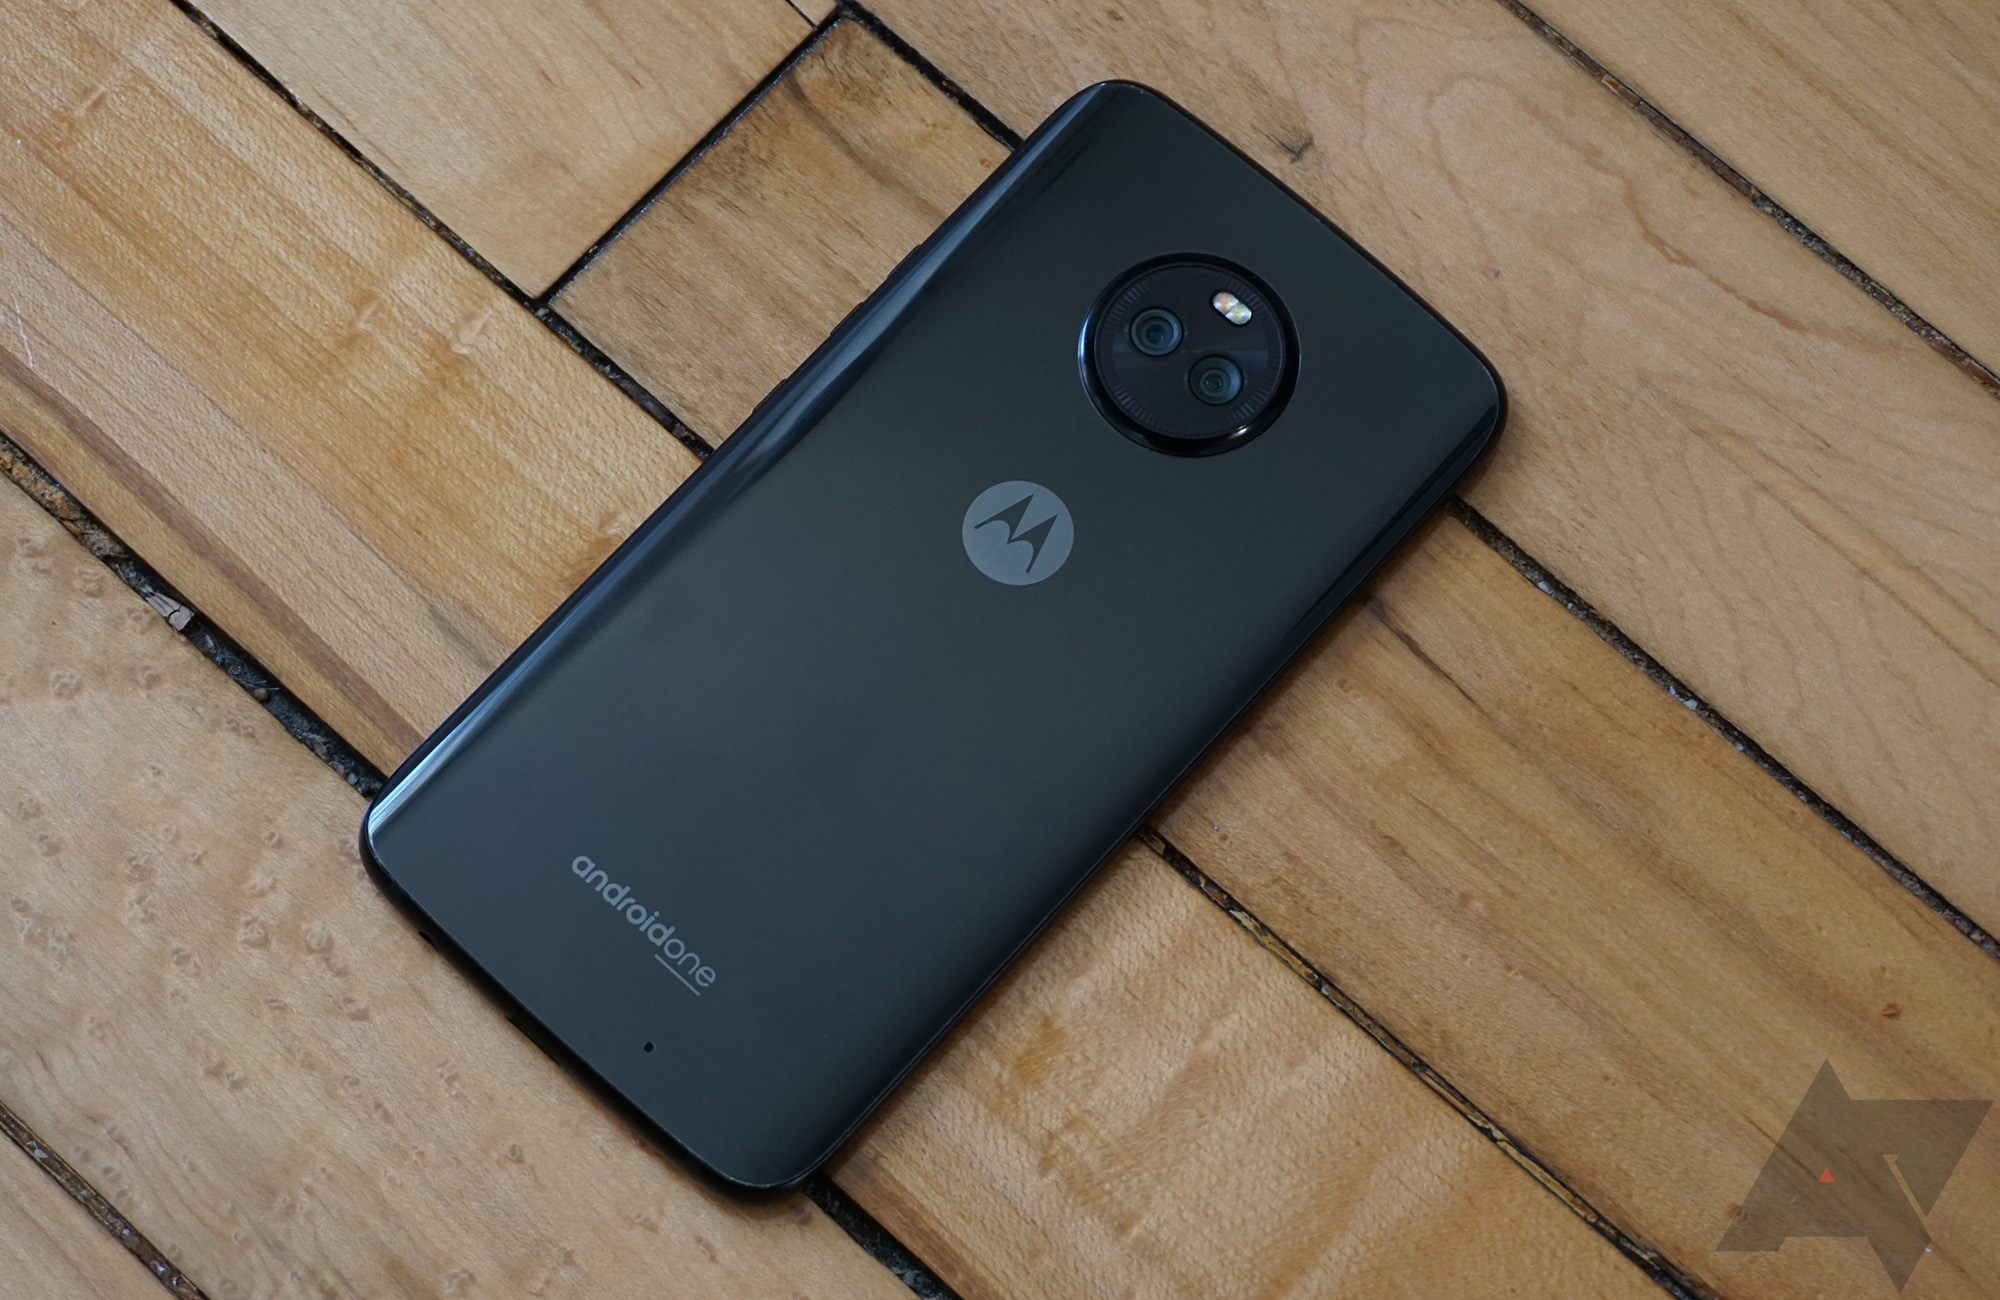 Moto X4 drops to $190 ($110 off) at Fry's